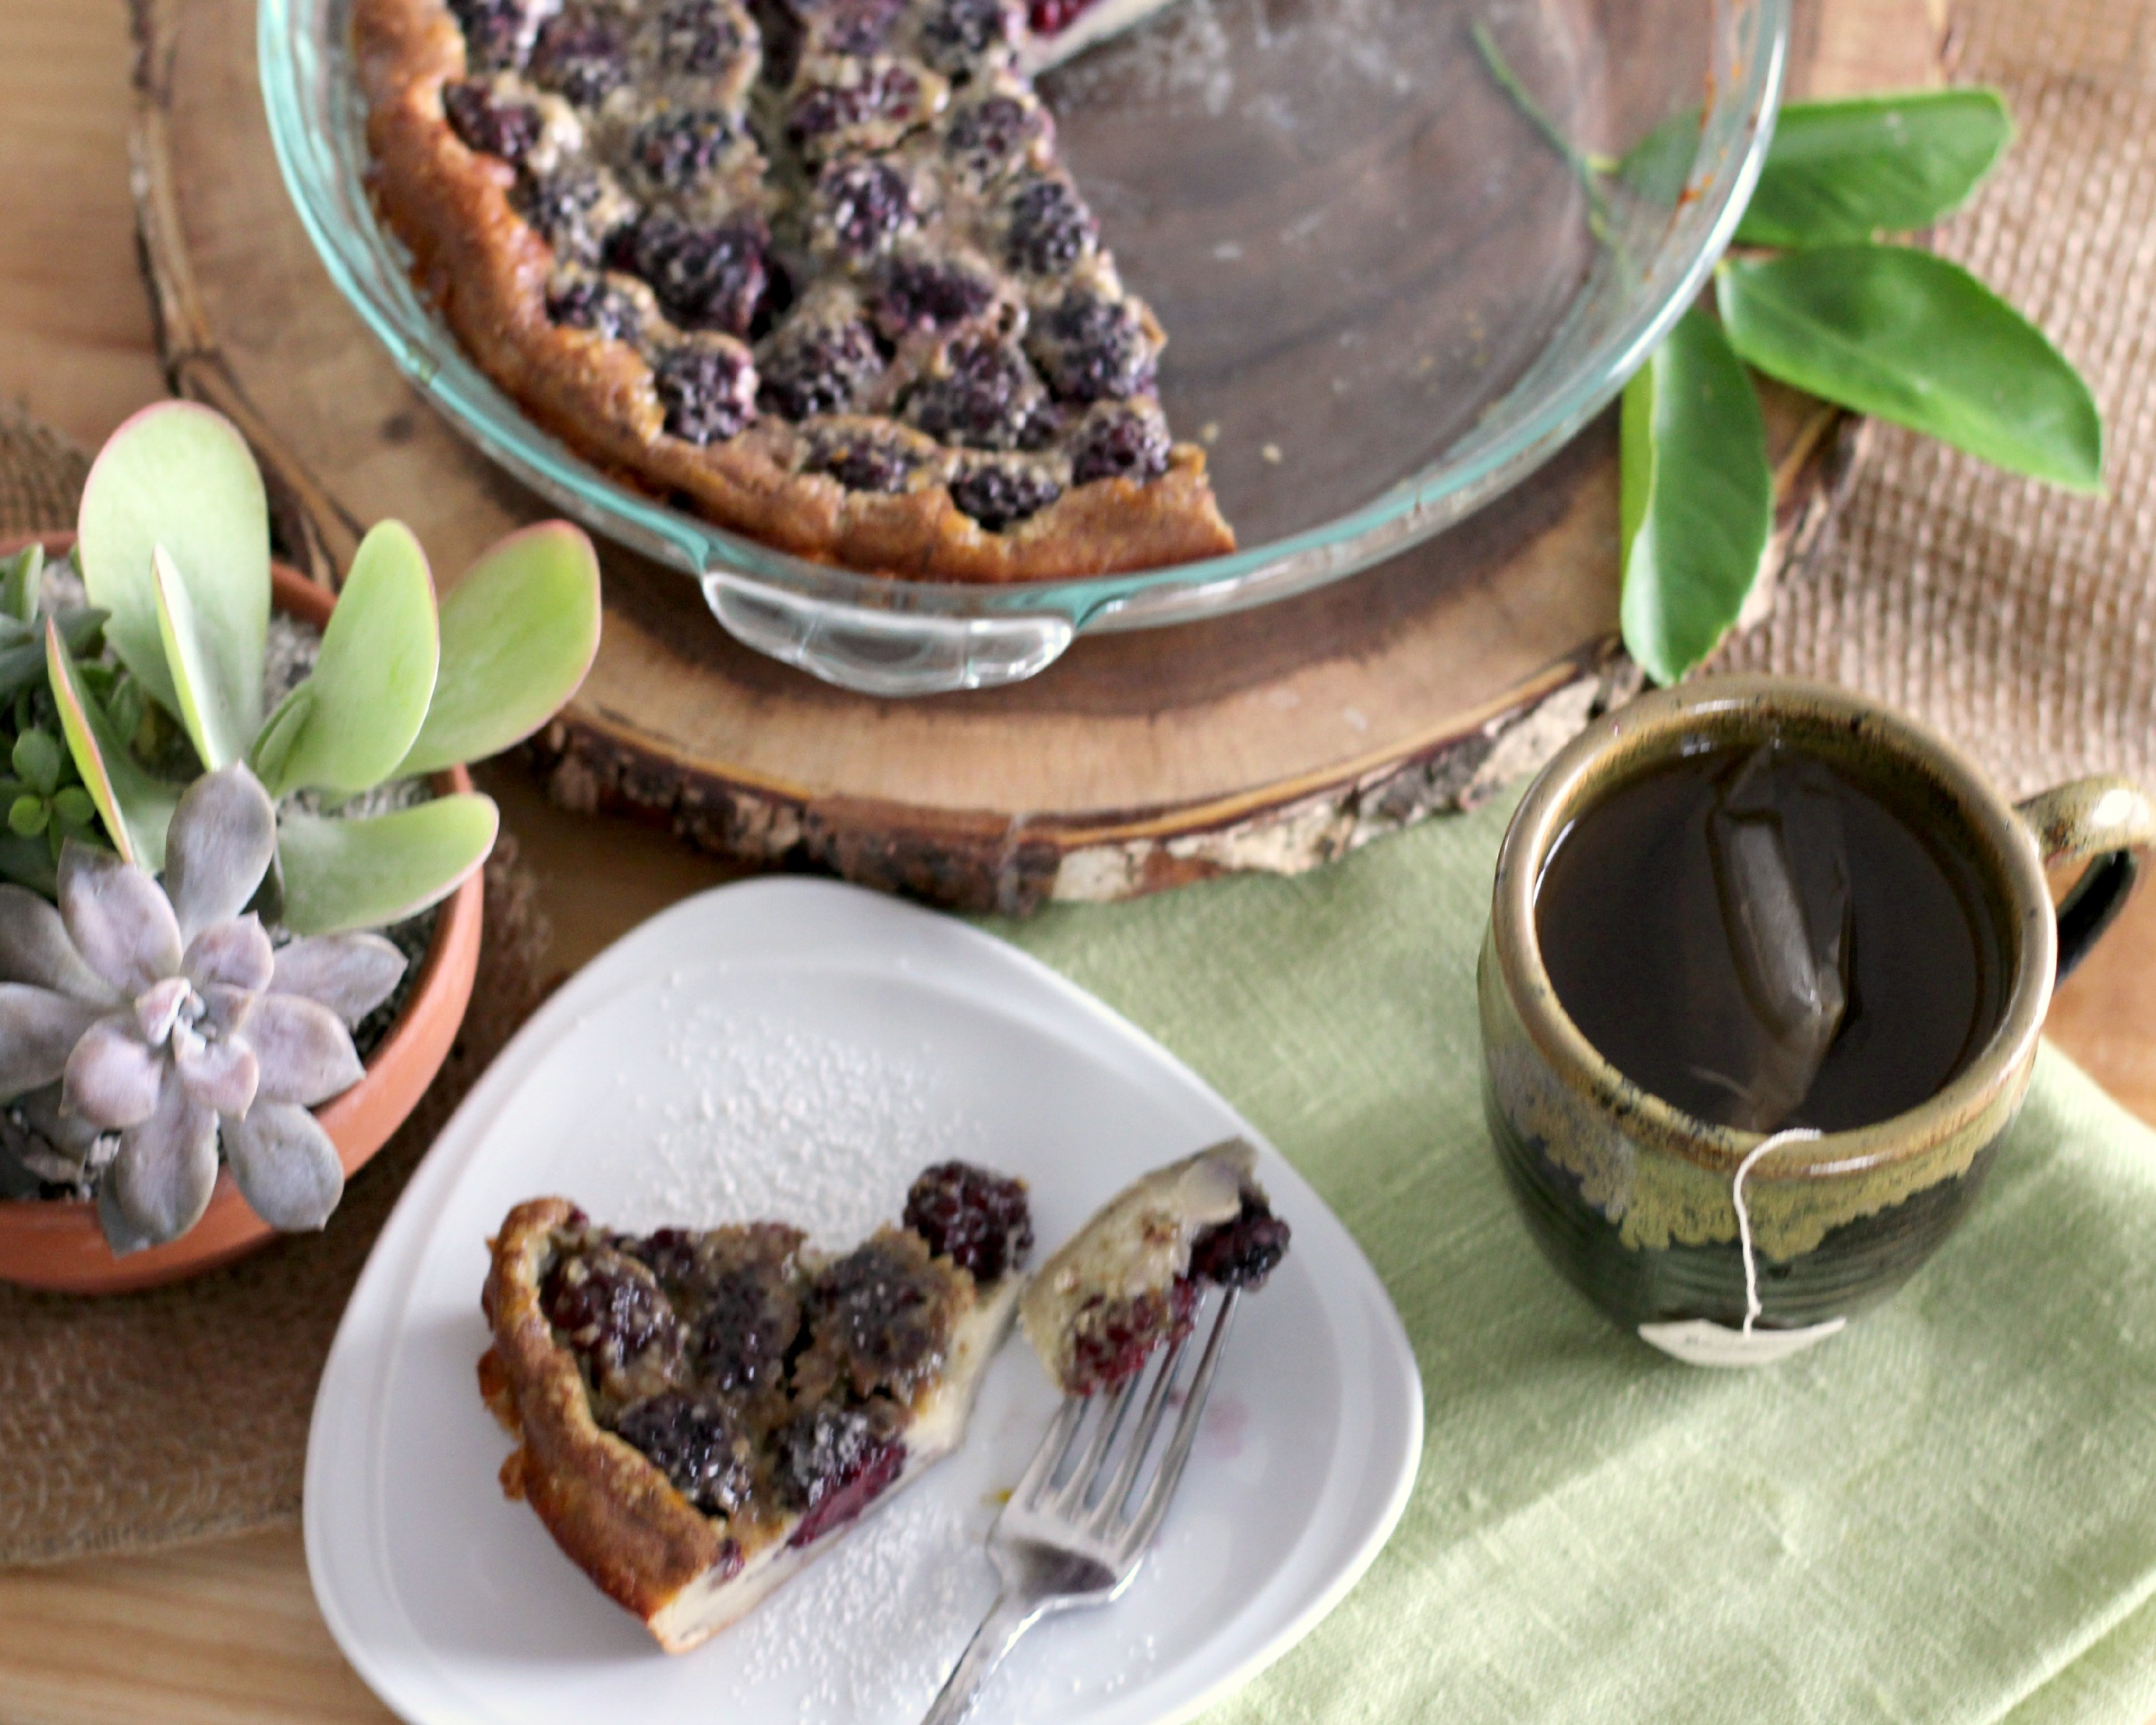 A glass pie plate of maple berry clafoutis with a slice removed to a white dessert plate.